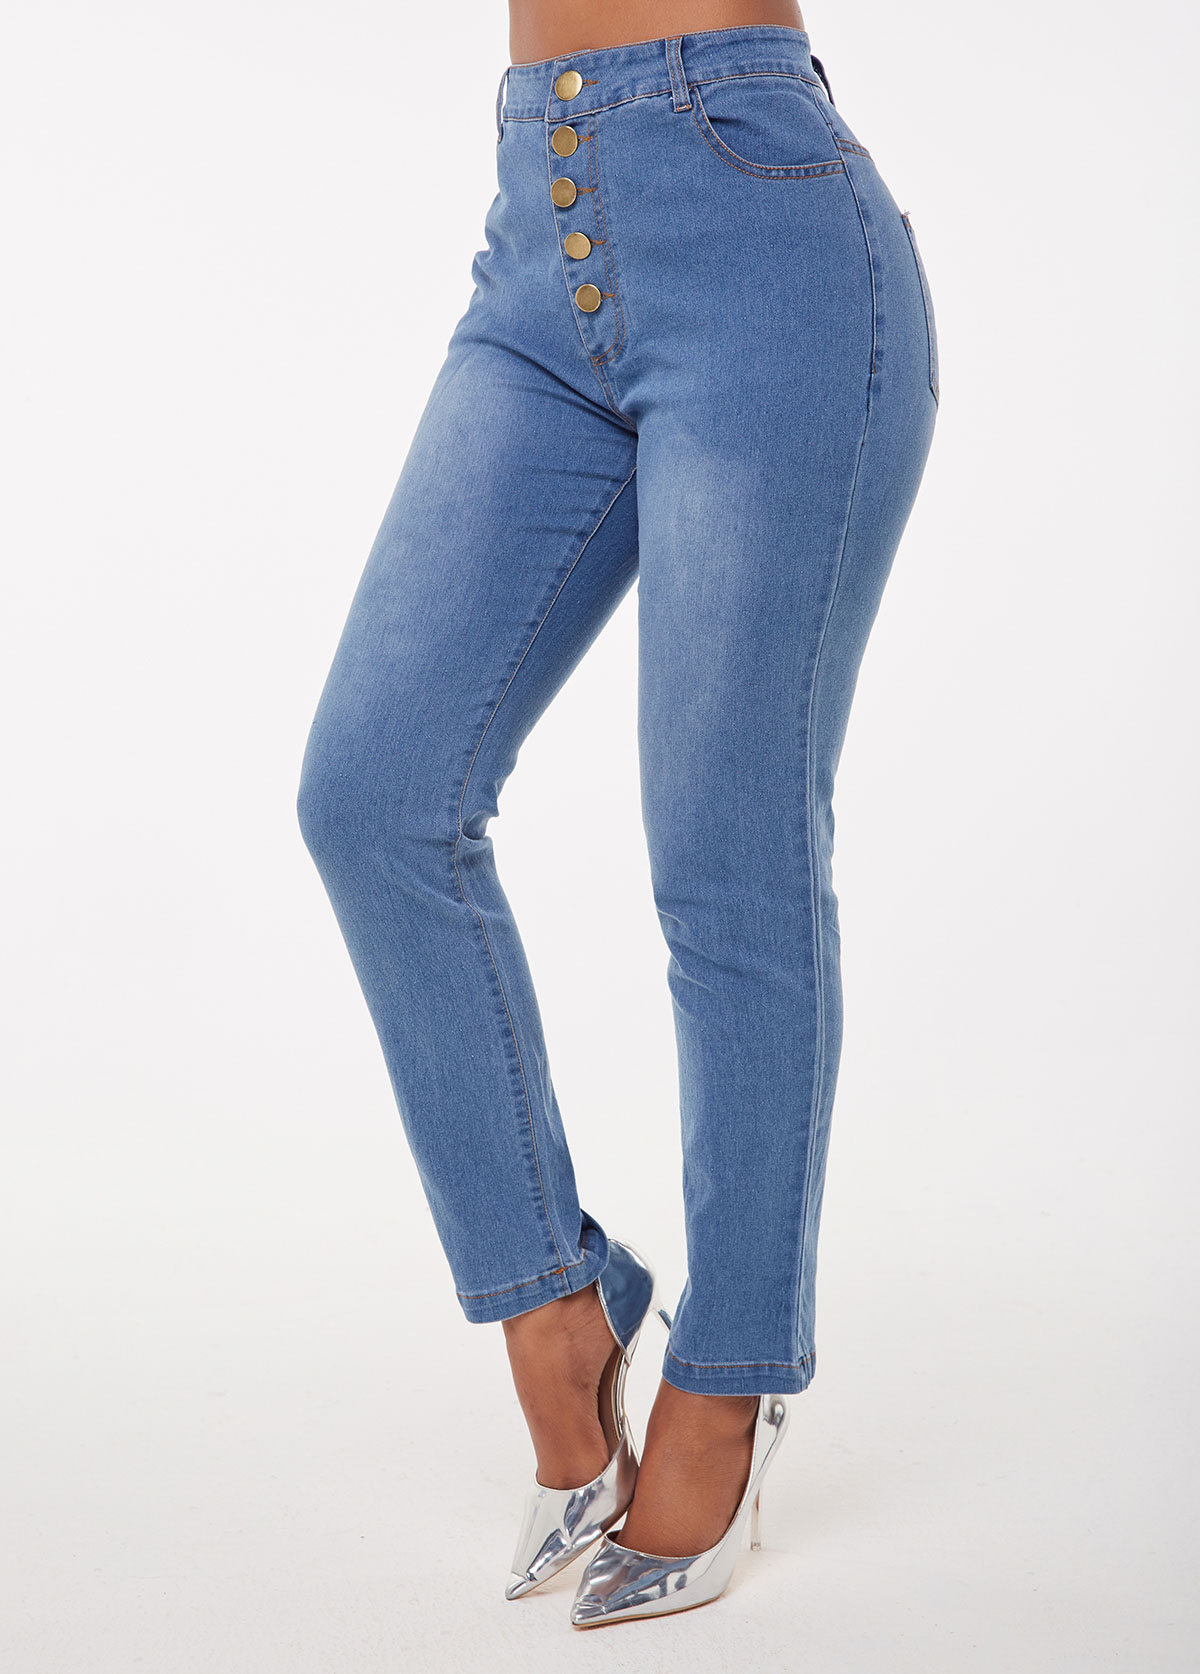 Acid Washed High Waist Button Jeans